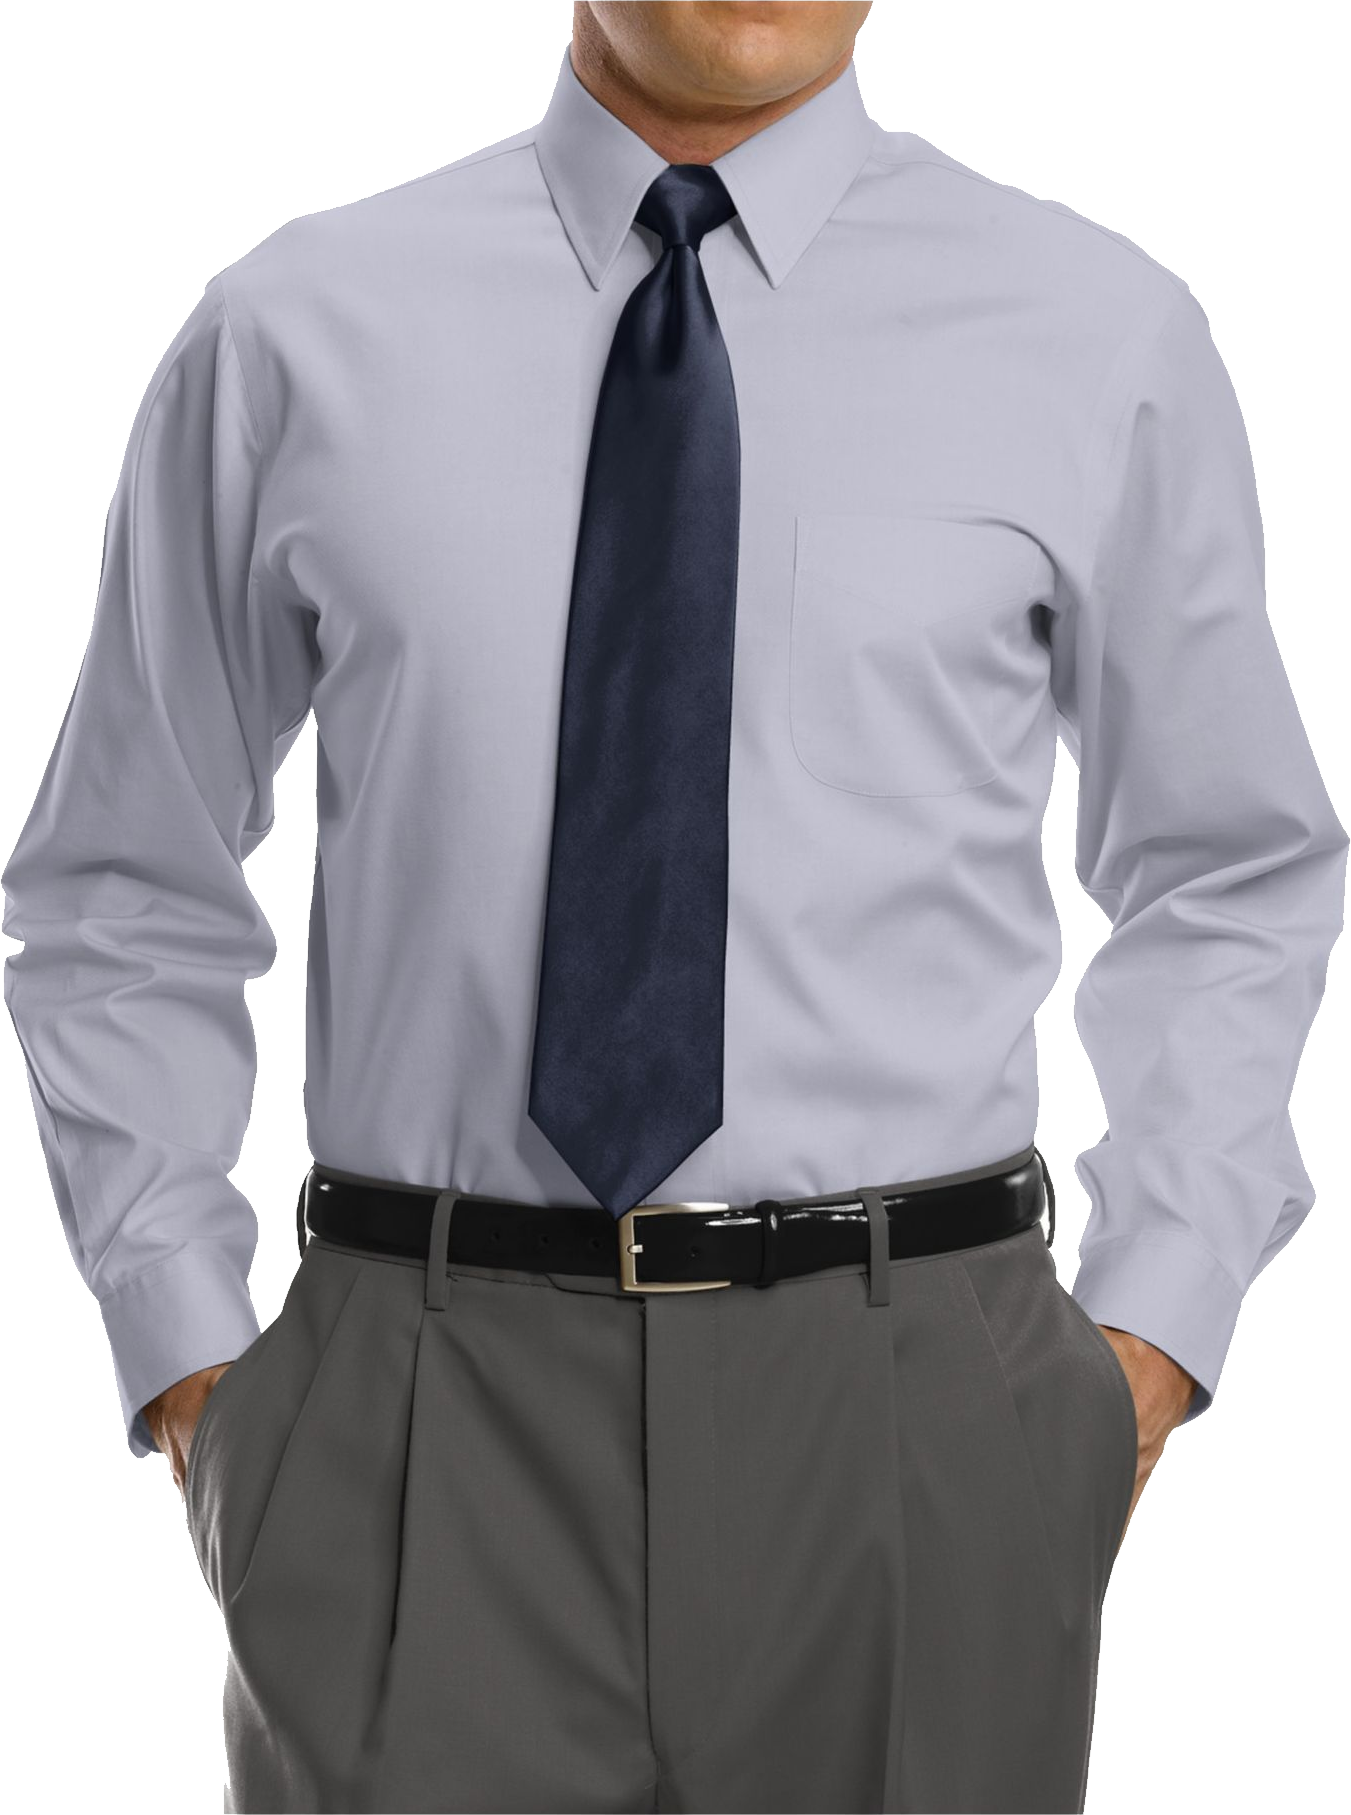 Dress shirt - Men Clothes PNG